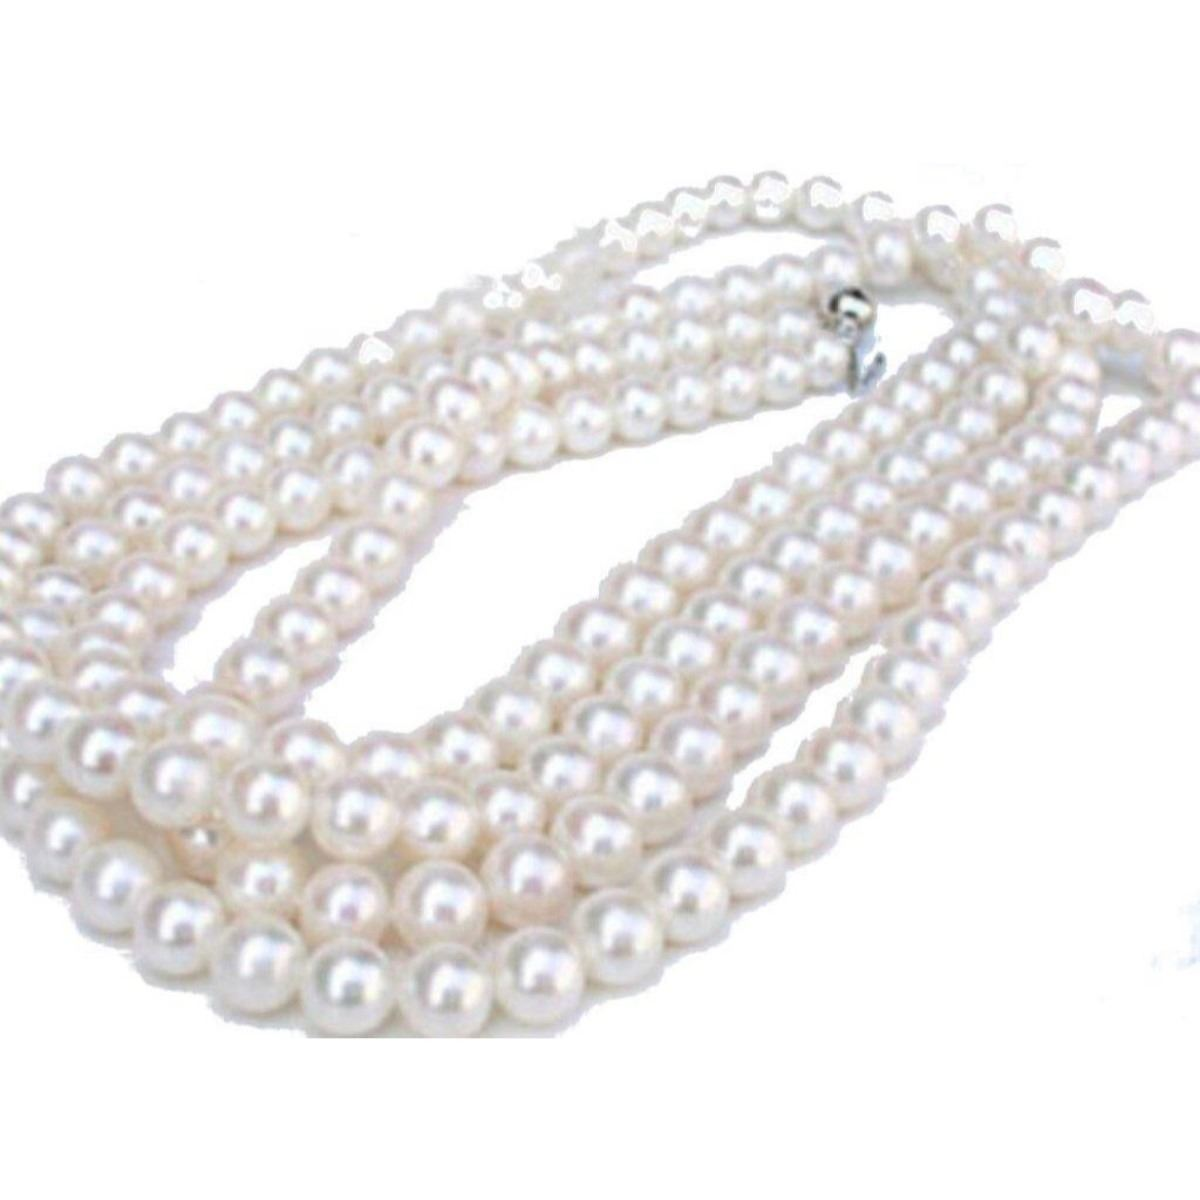 Per String 7-8mm Oyster Pink Near Round Freshwater Pearls  Jewellery 60